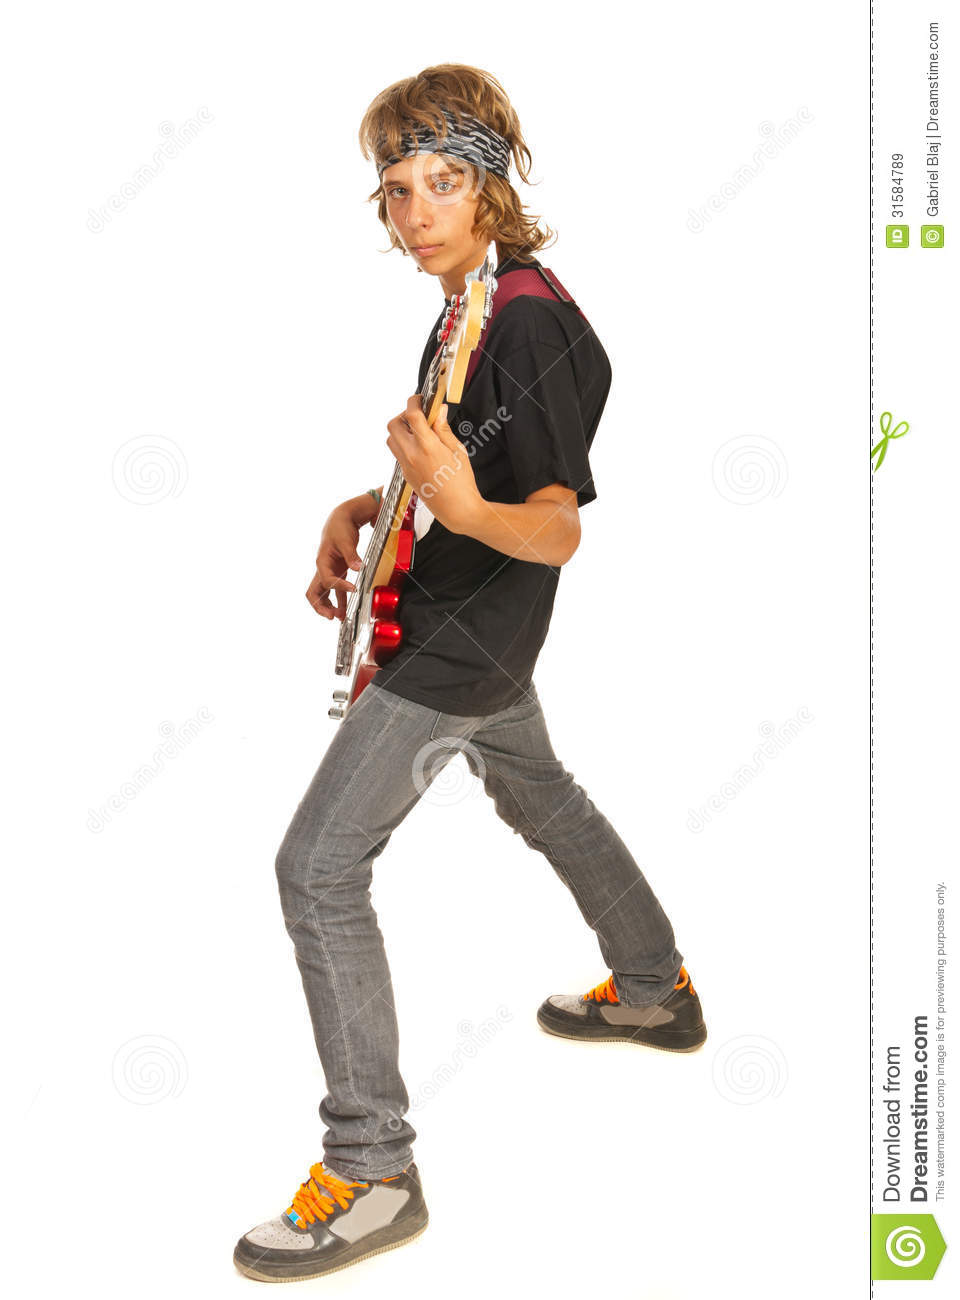 teen boy rocker with bass guitar royalty free stock images bass guitar clip art free bass guitar clipart black and white